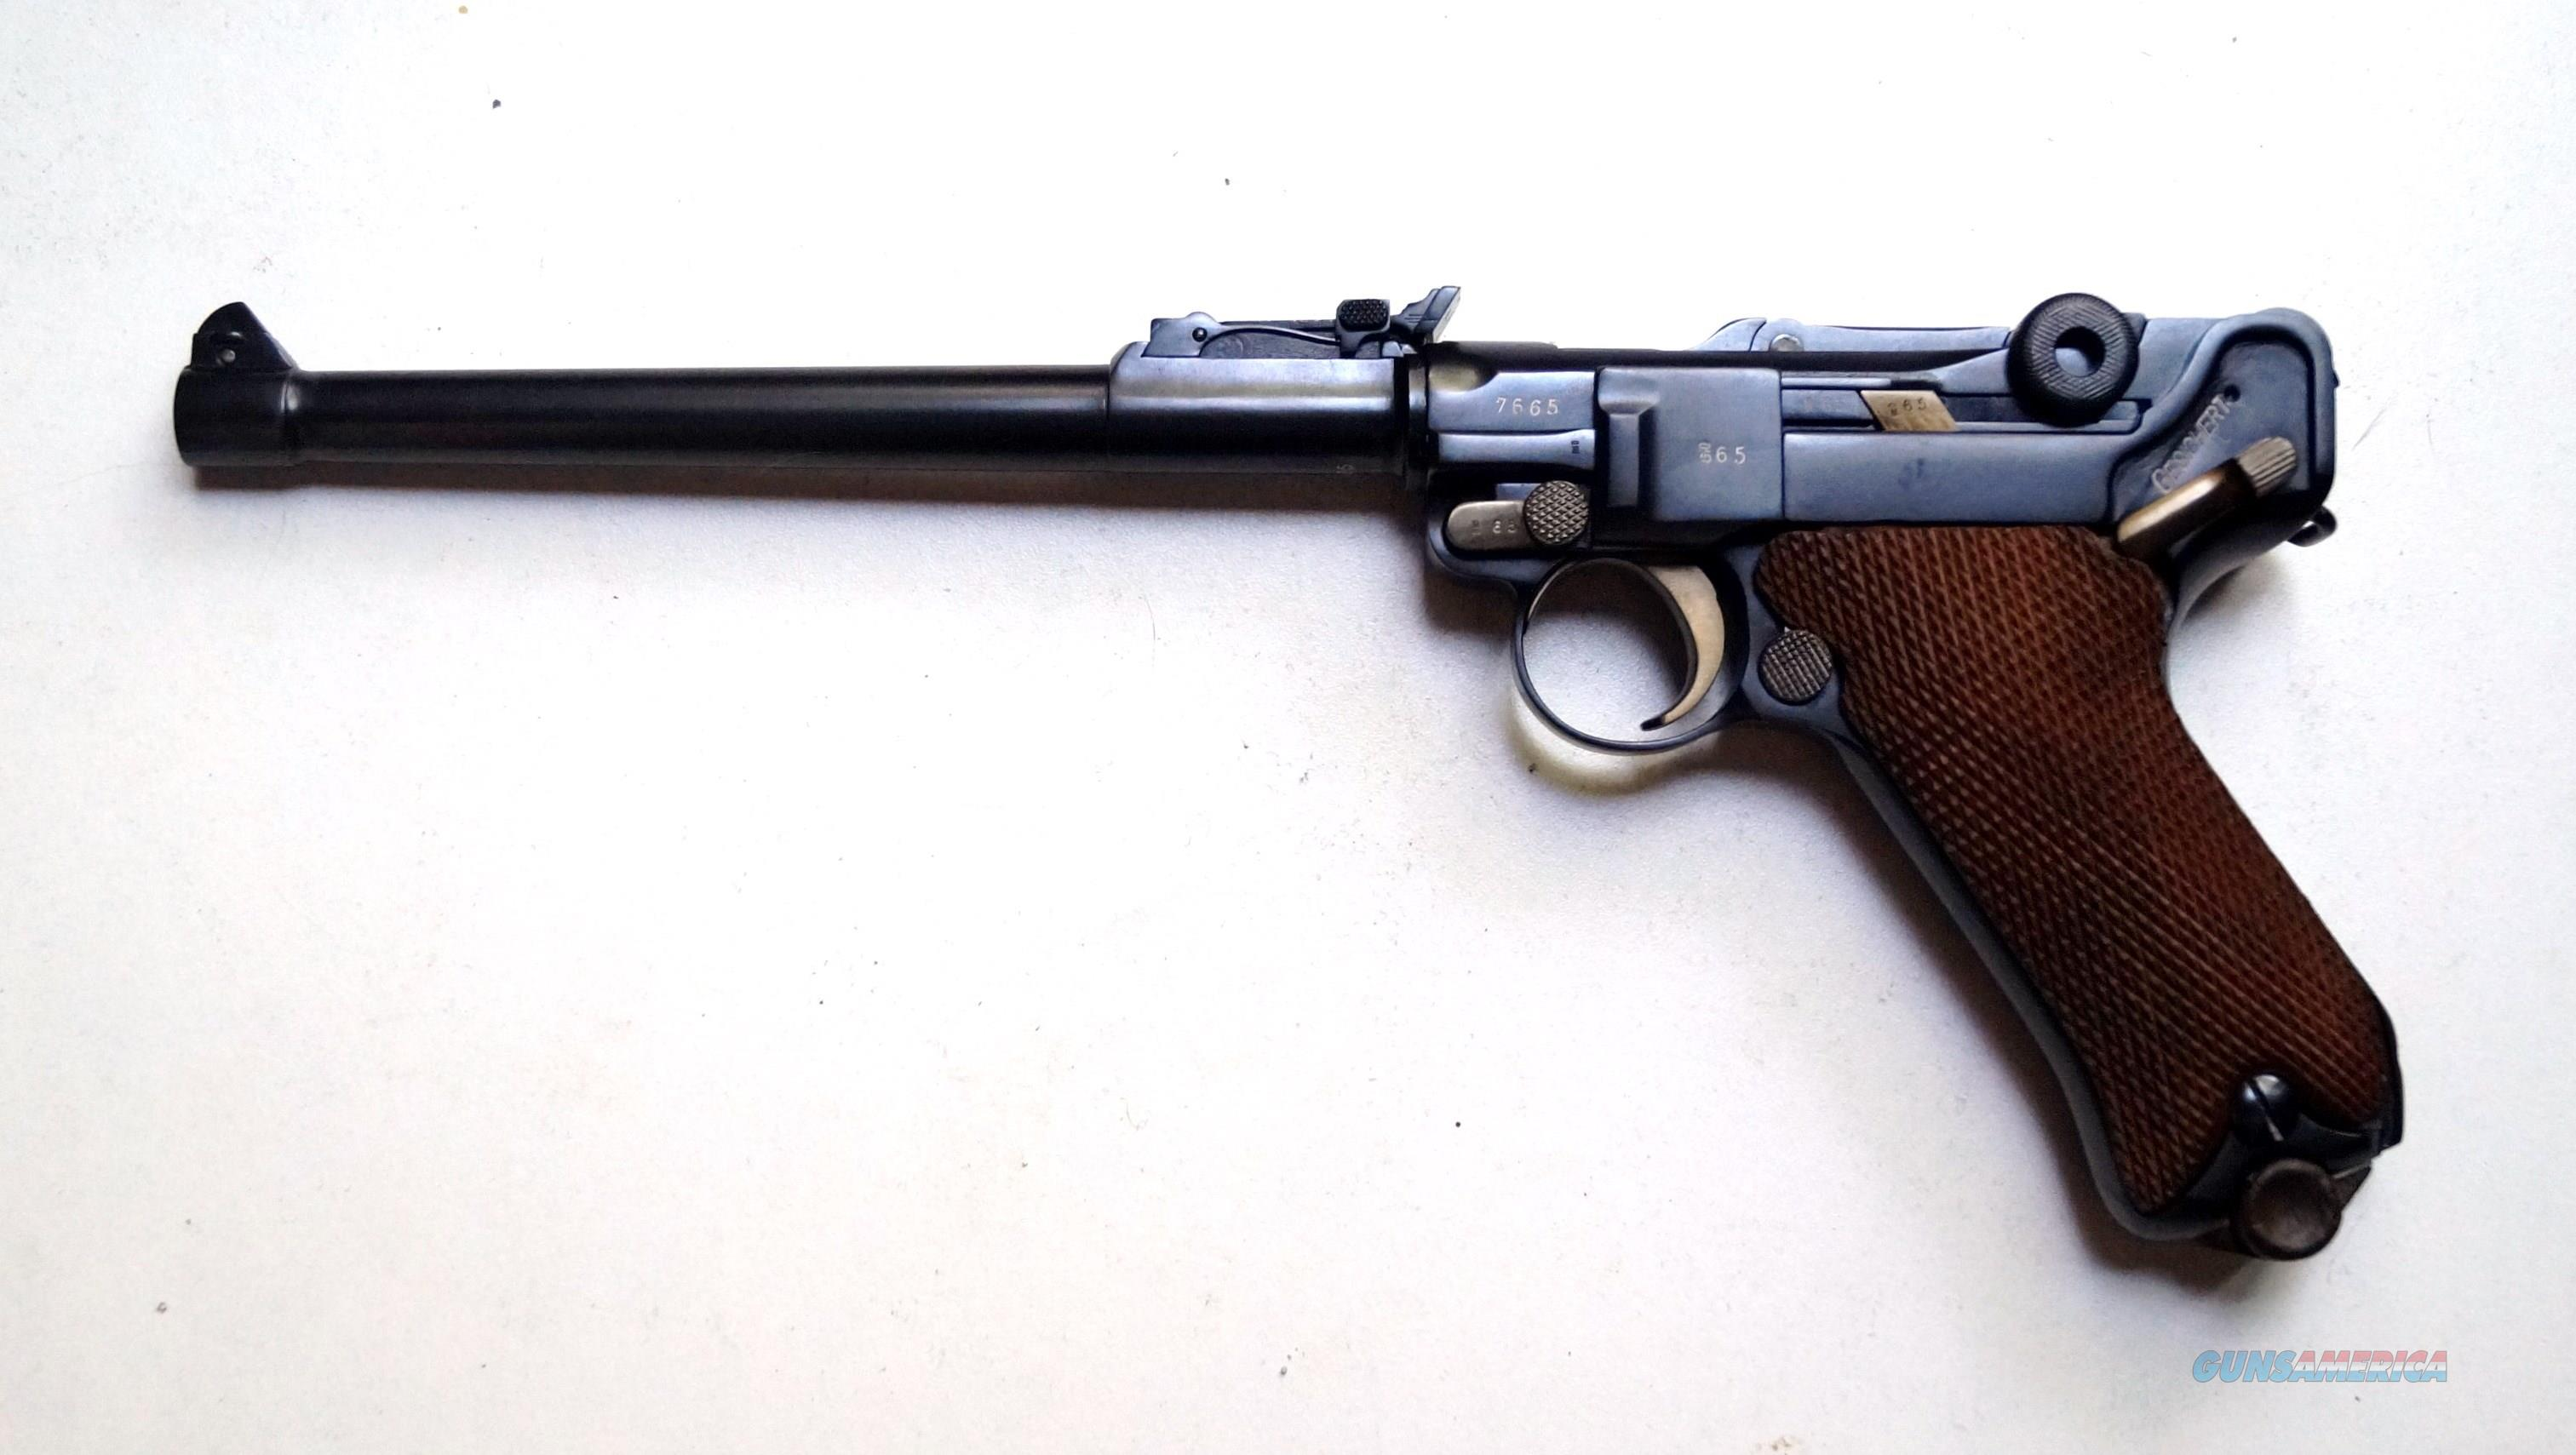 1914 ERFURT MILITARY ARTILLERY GERMAN LUGER WITH MATCHING NUMBERED MAGAZINE  Guns > Pistols > Luger Pistols